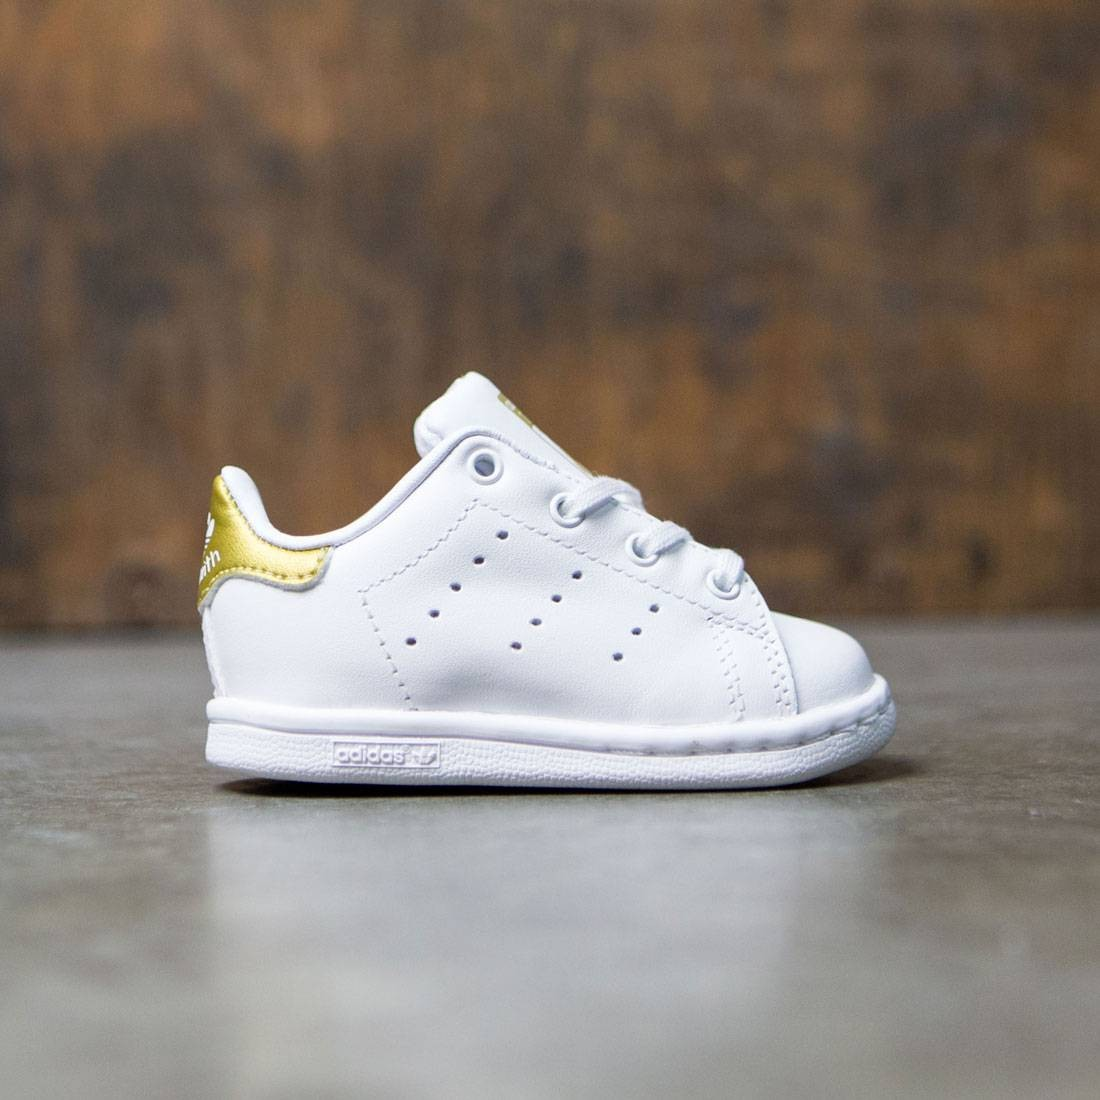 【海外限定】アディダス スニーカー 靴 【 ADIDAS TODDLERS STAN SMITH I WHITE GOLD METALLIC 】